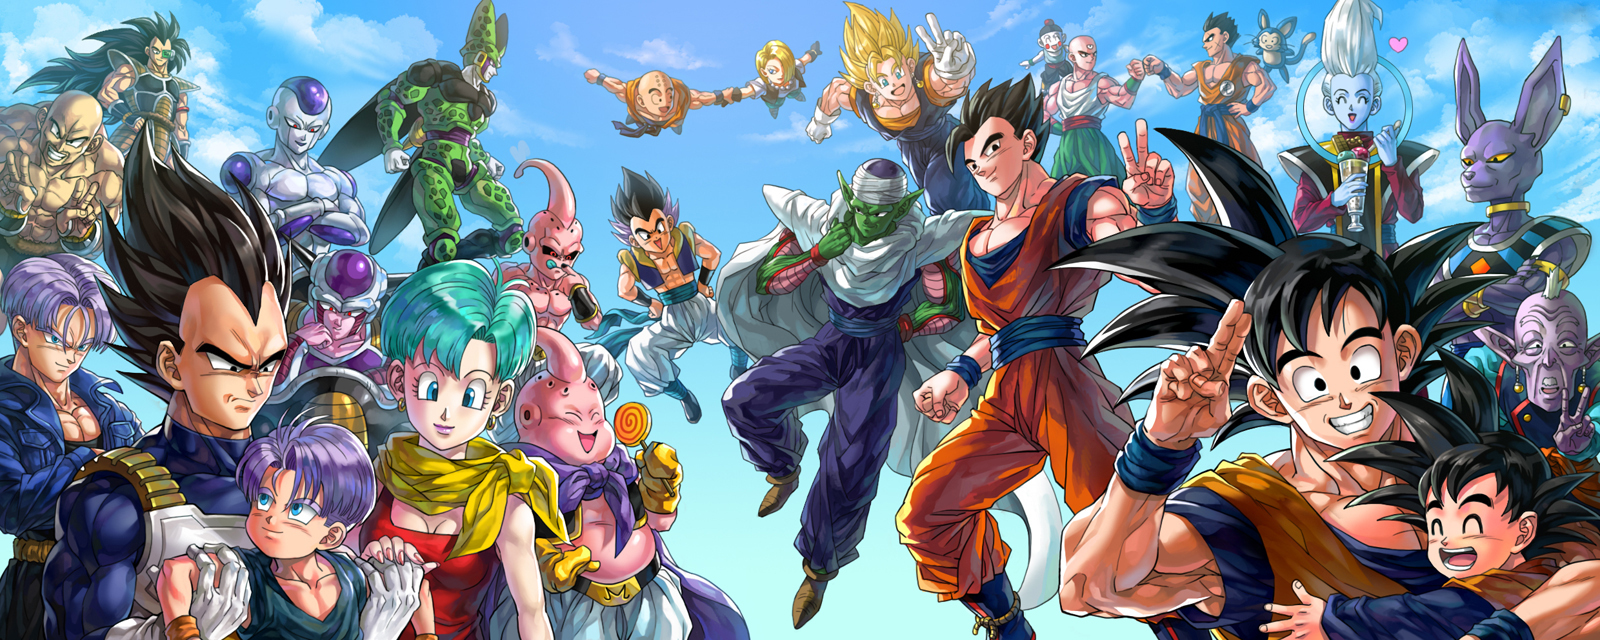 dragonball_z_by_goddessmechanic2-d7paus